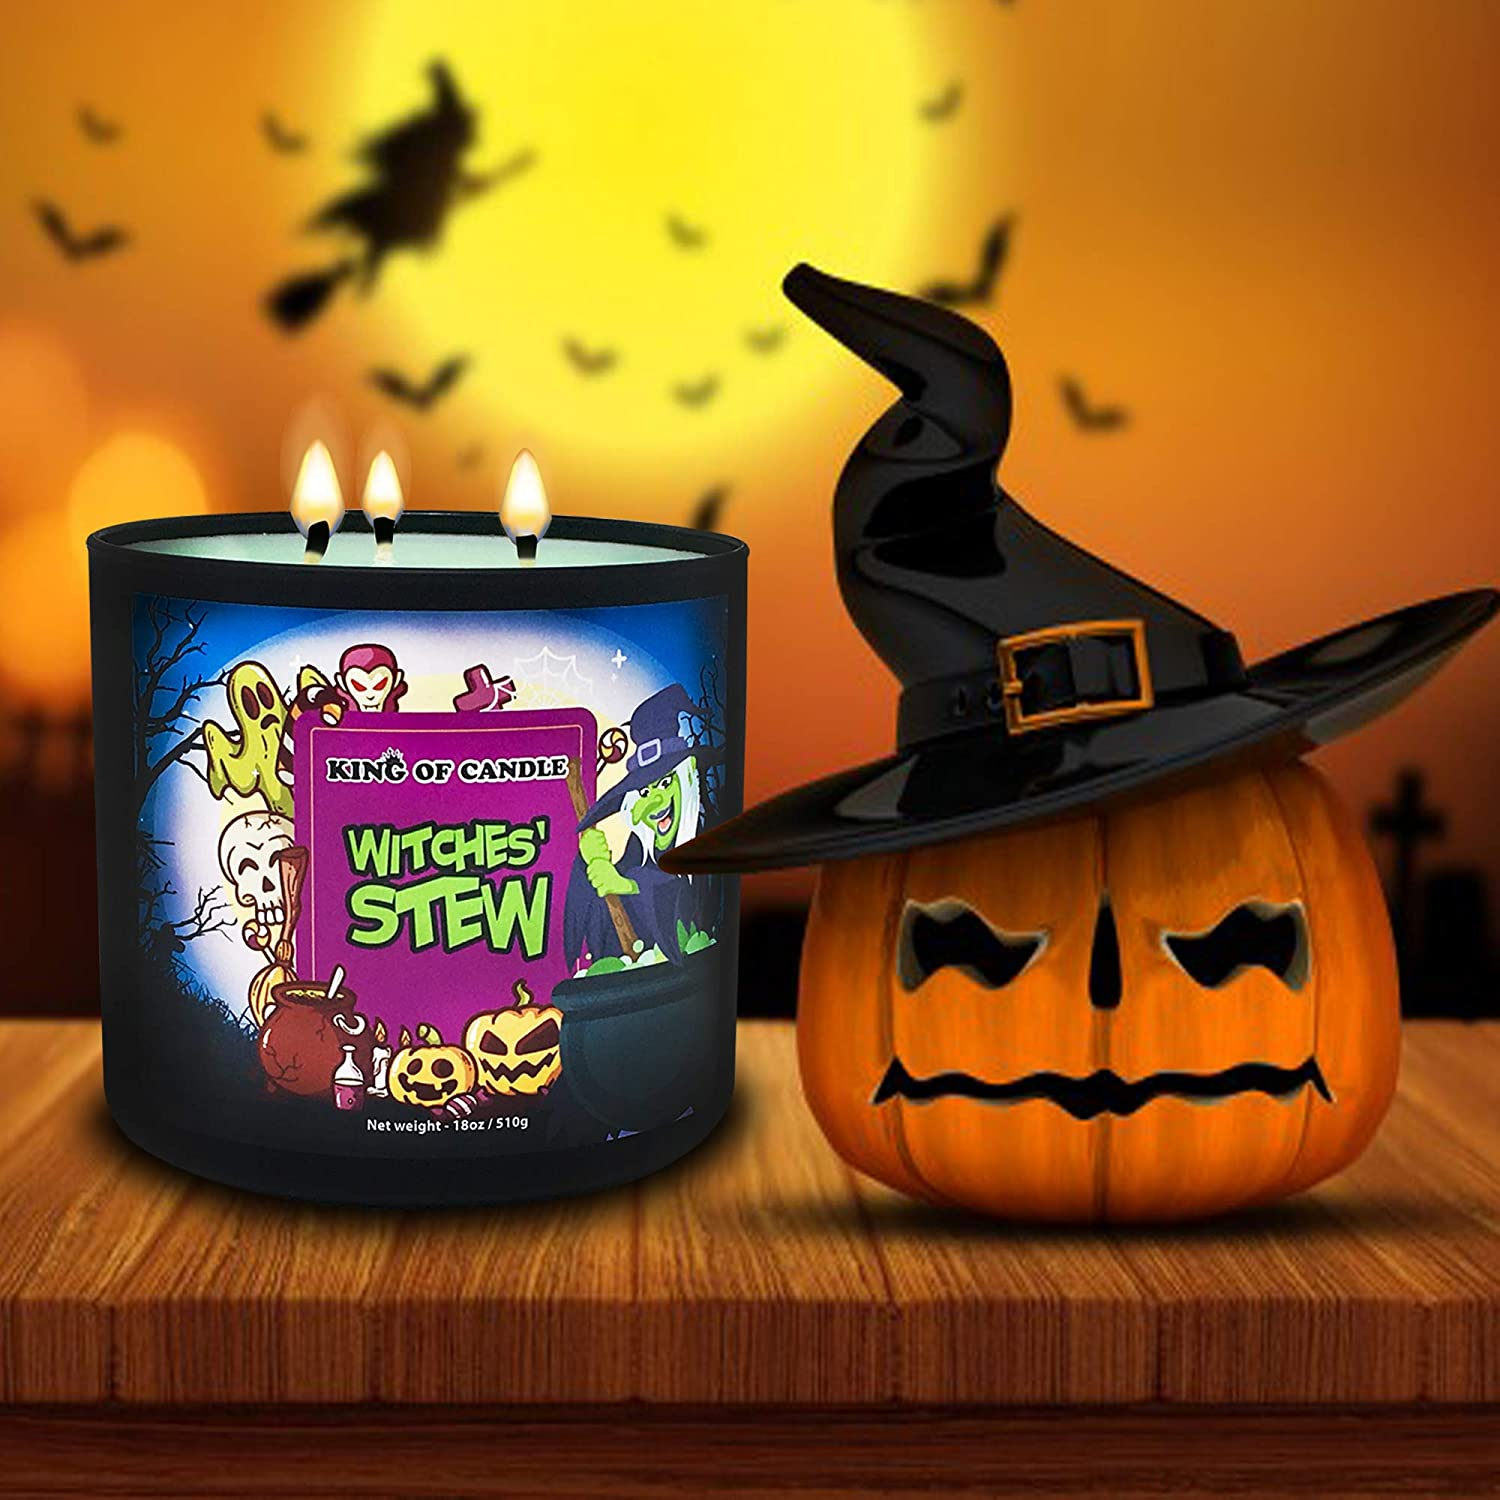 Witch Stew Soy Candle In Glass Container With Lid-Spooky Scary Candle-Halloween Candle-Skeleton Bone Candle-Gift Candle